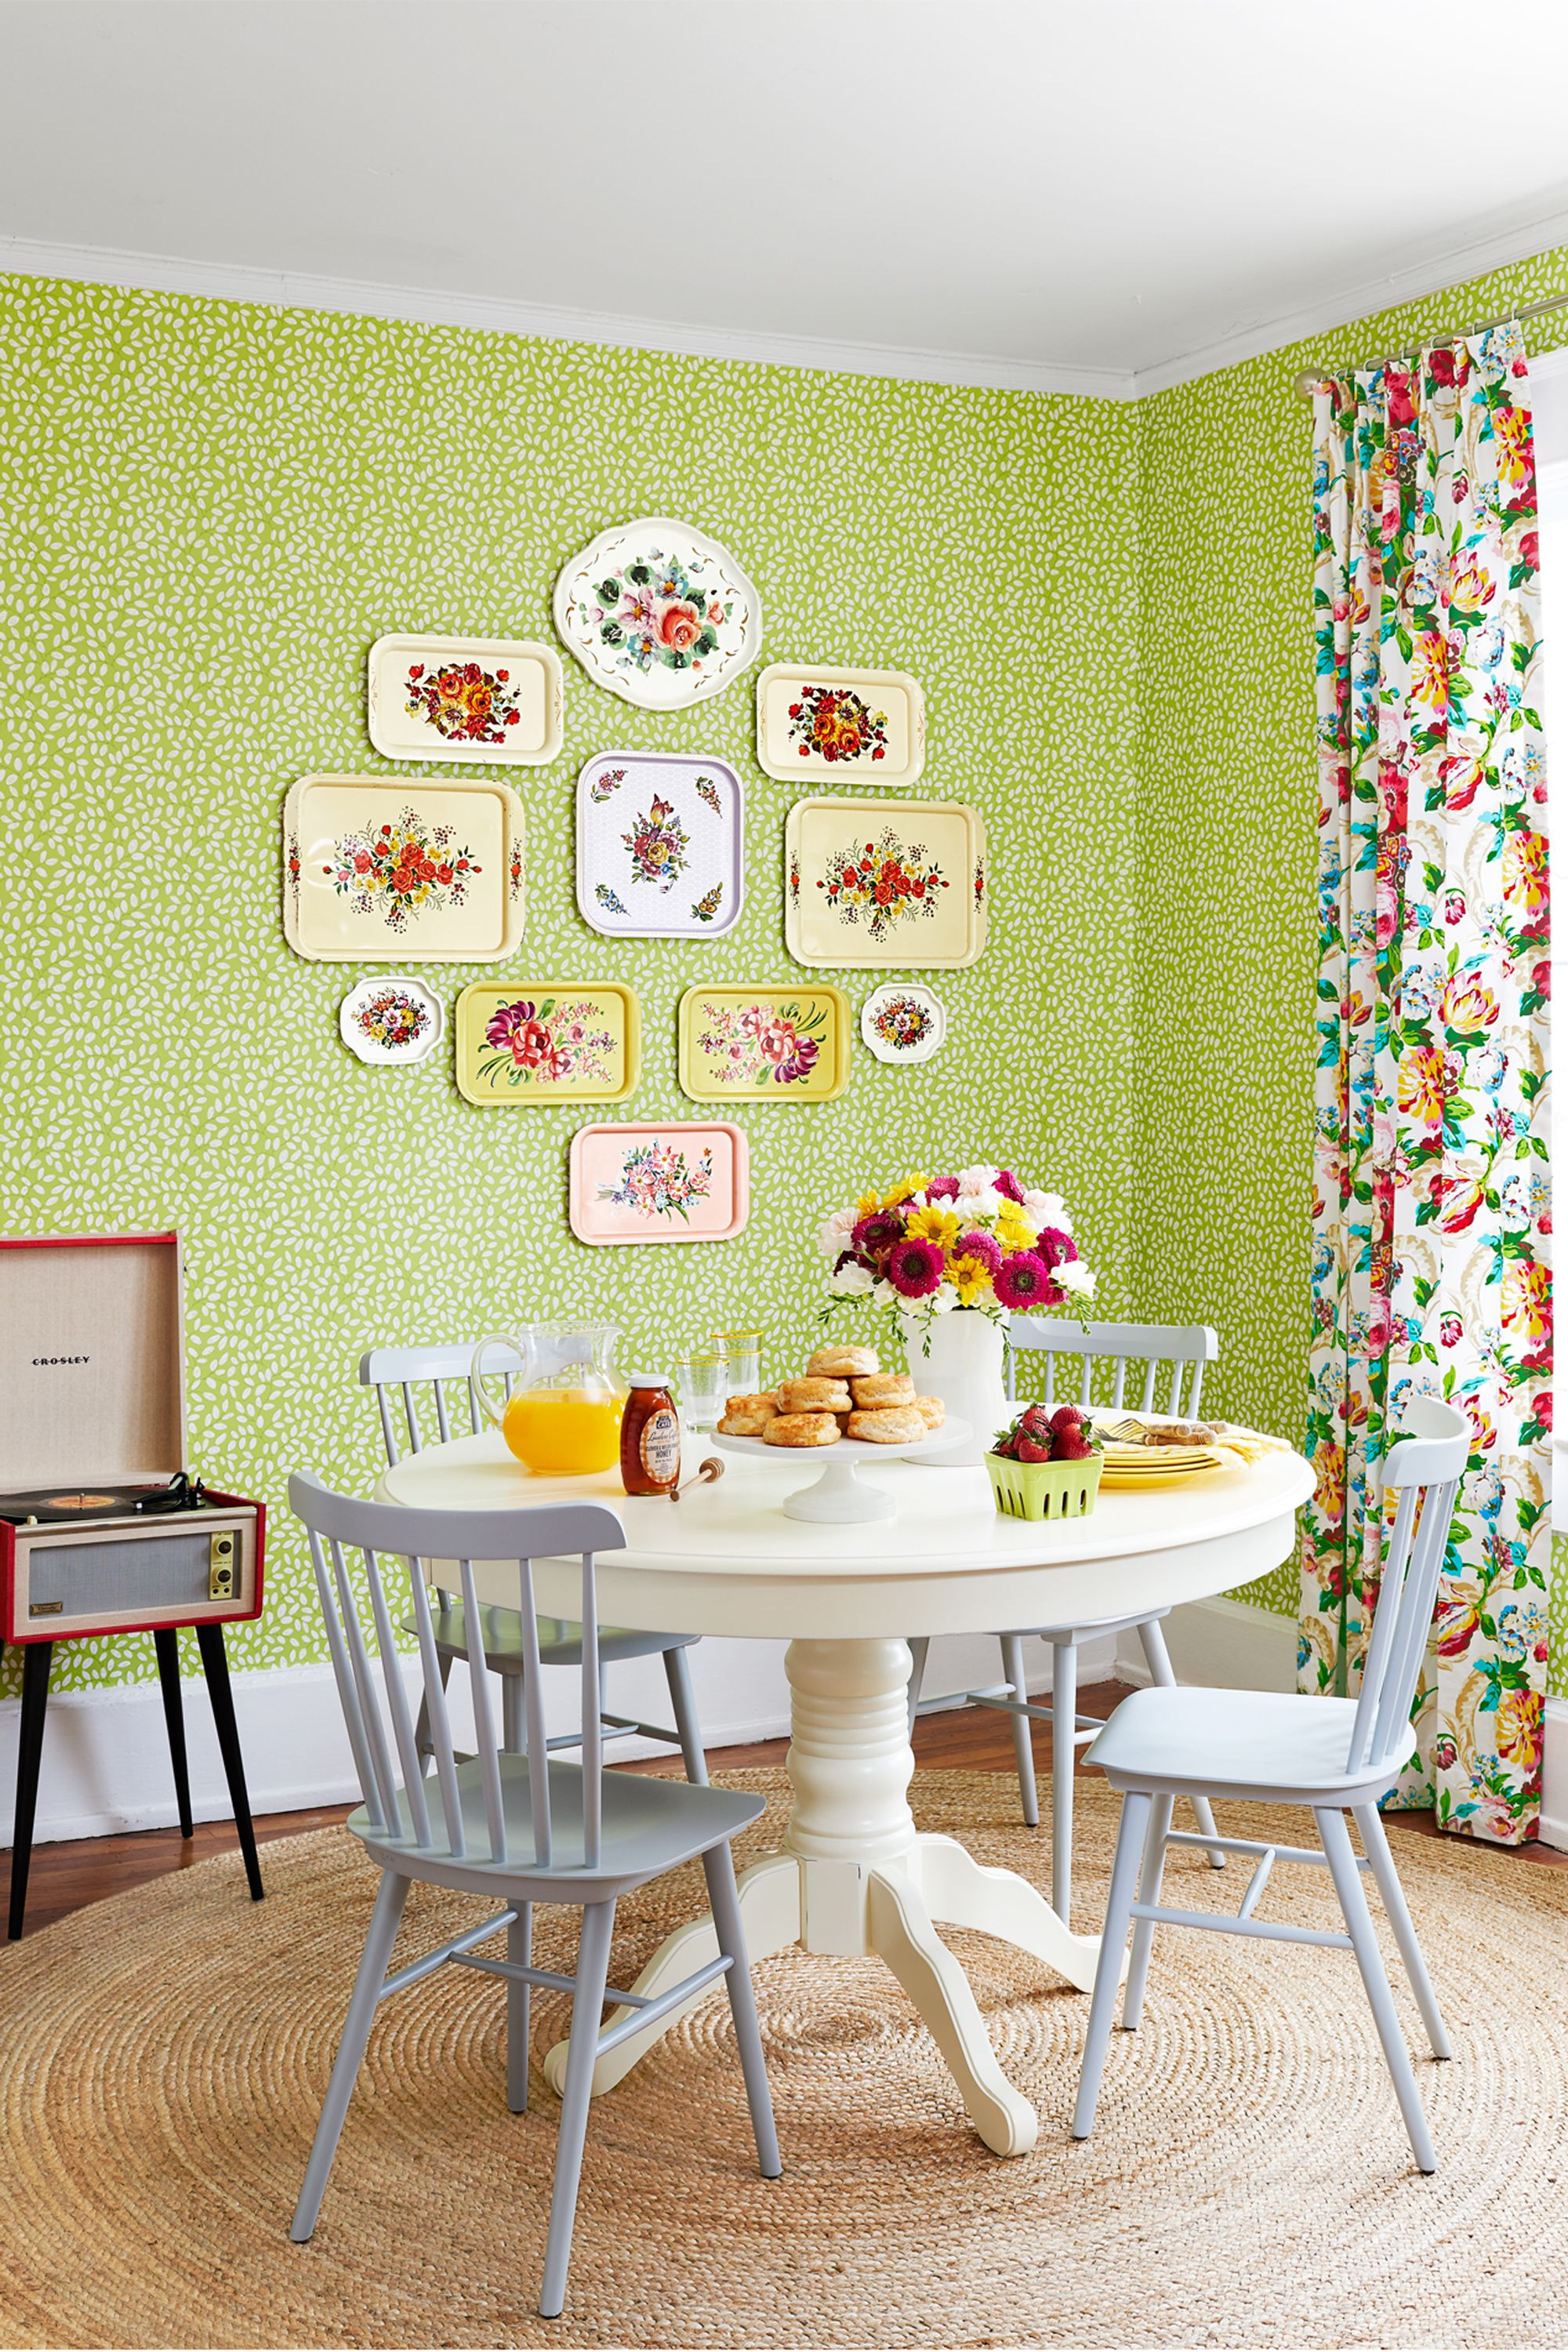 85 Inspired Ideas for Dining Room Decorating | Metal trays ...